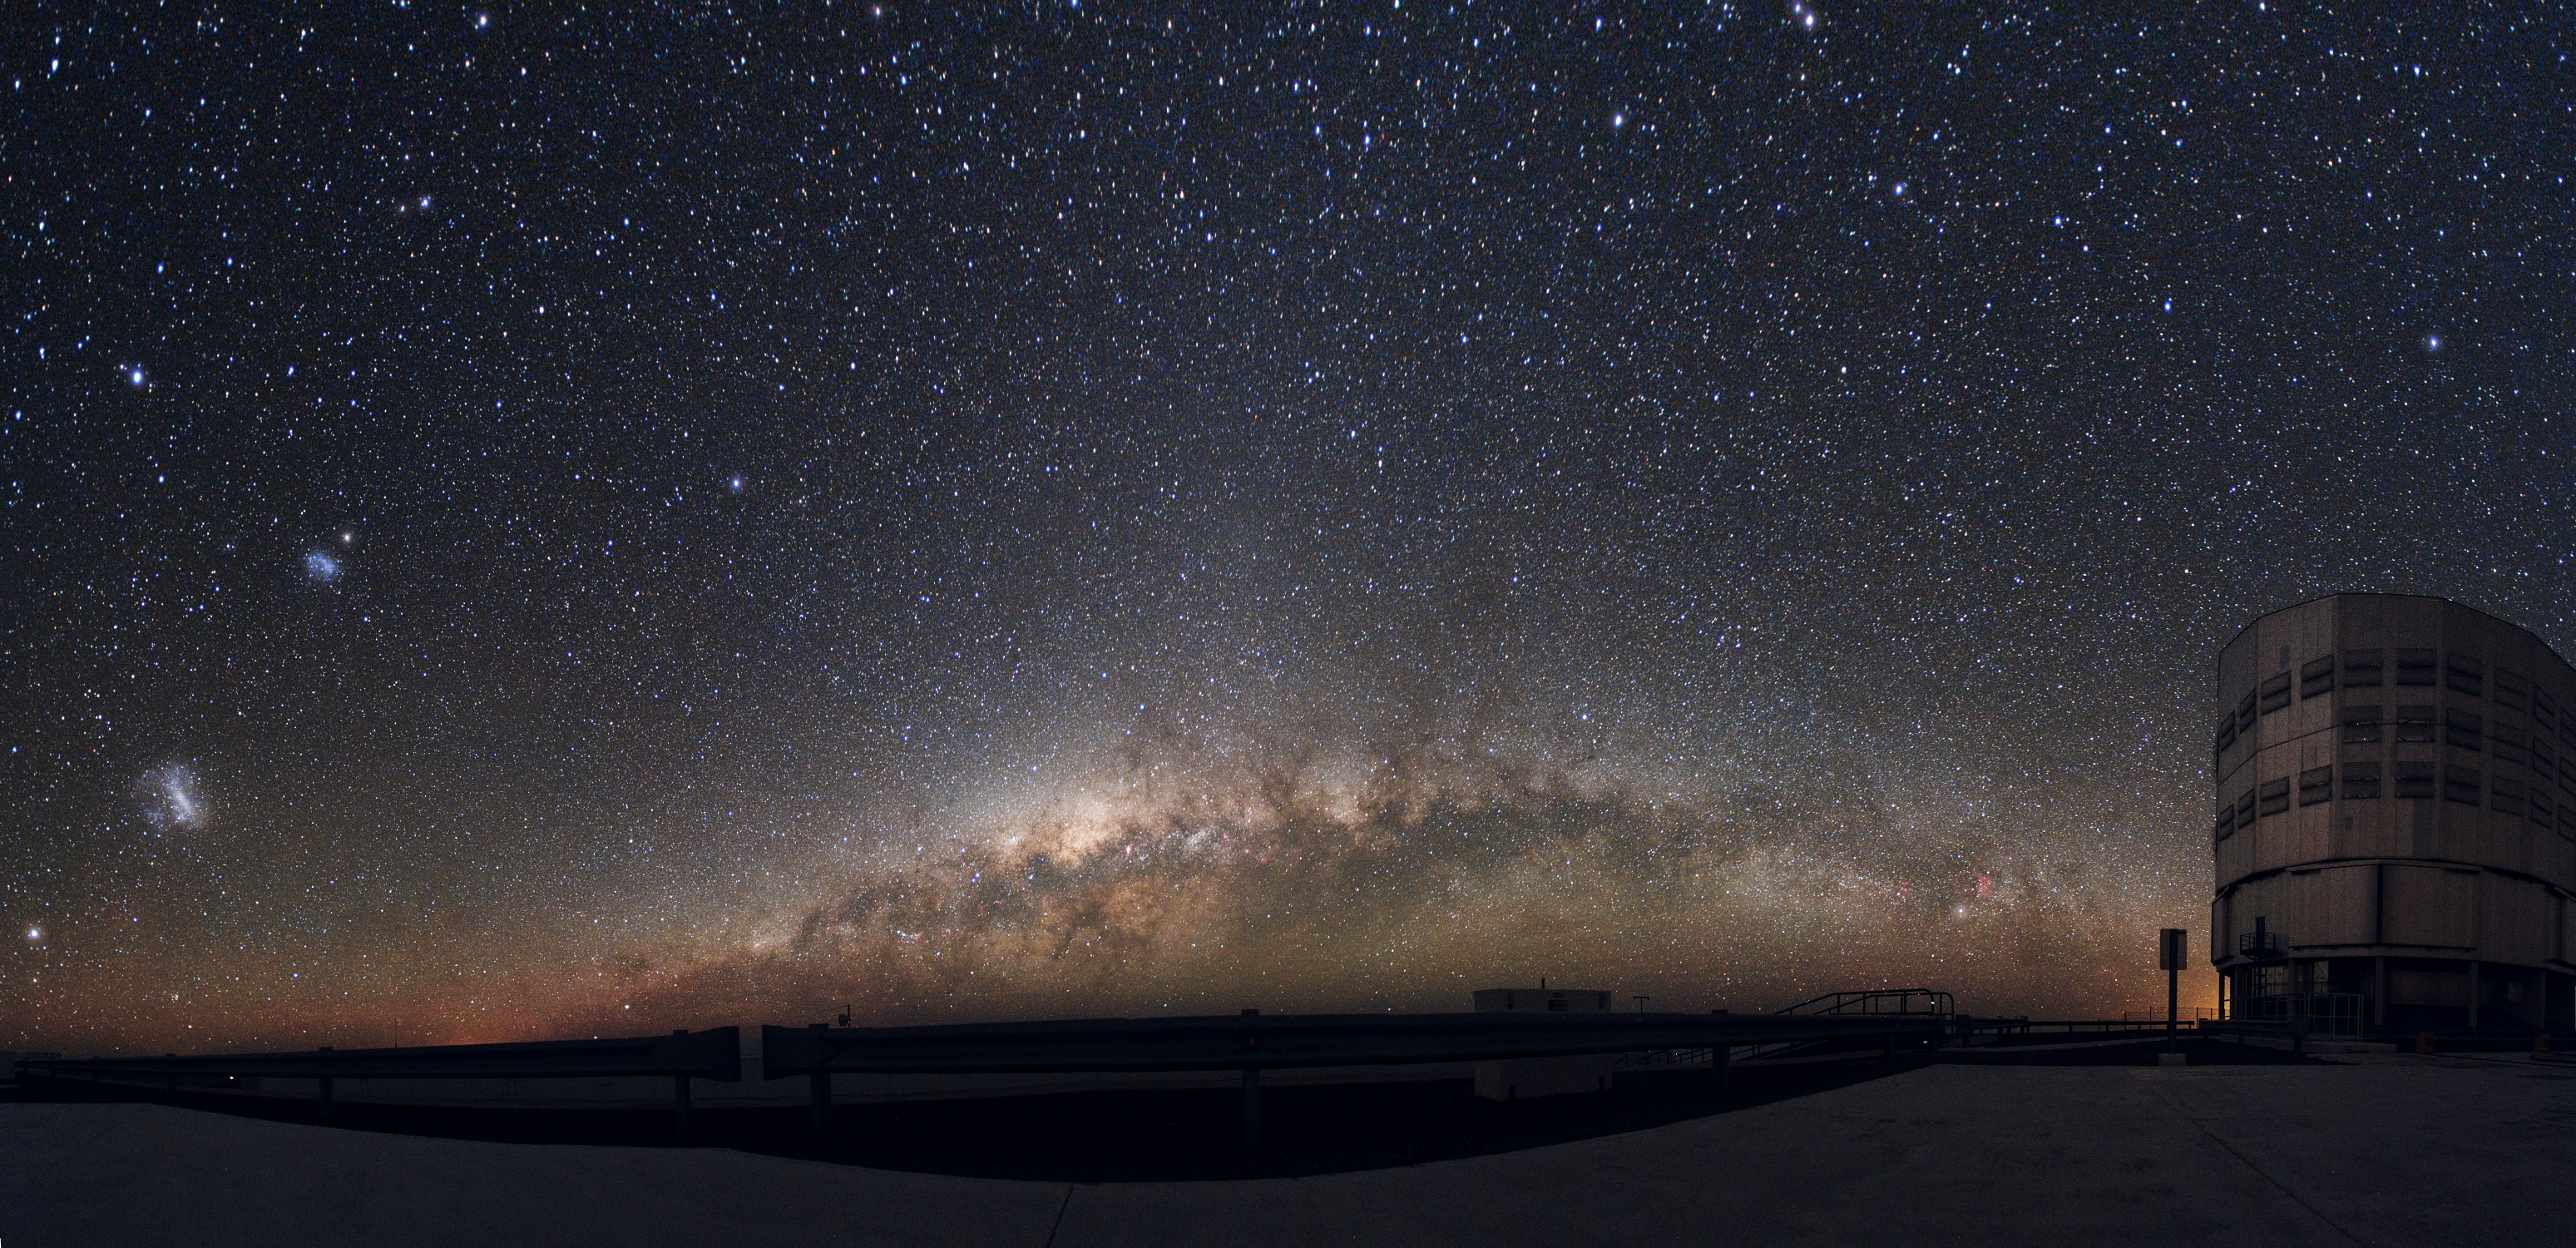 Panoramic Large and Small Magellanic Clouds